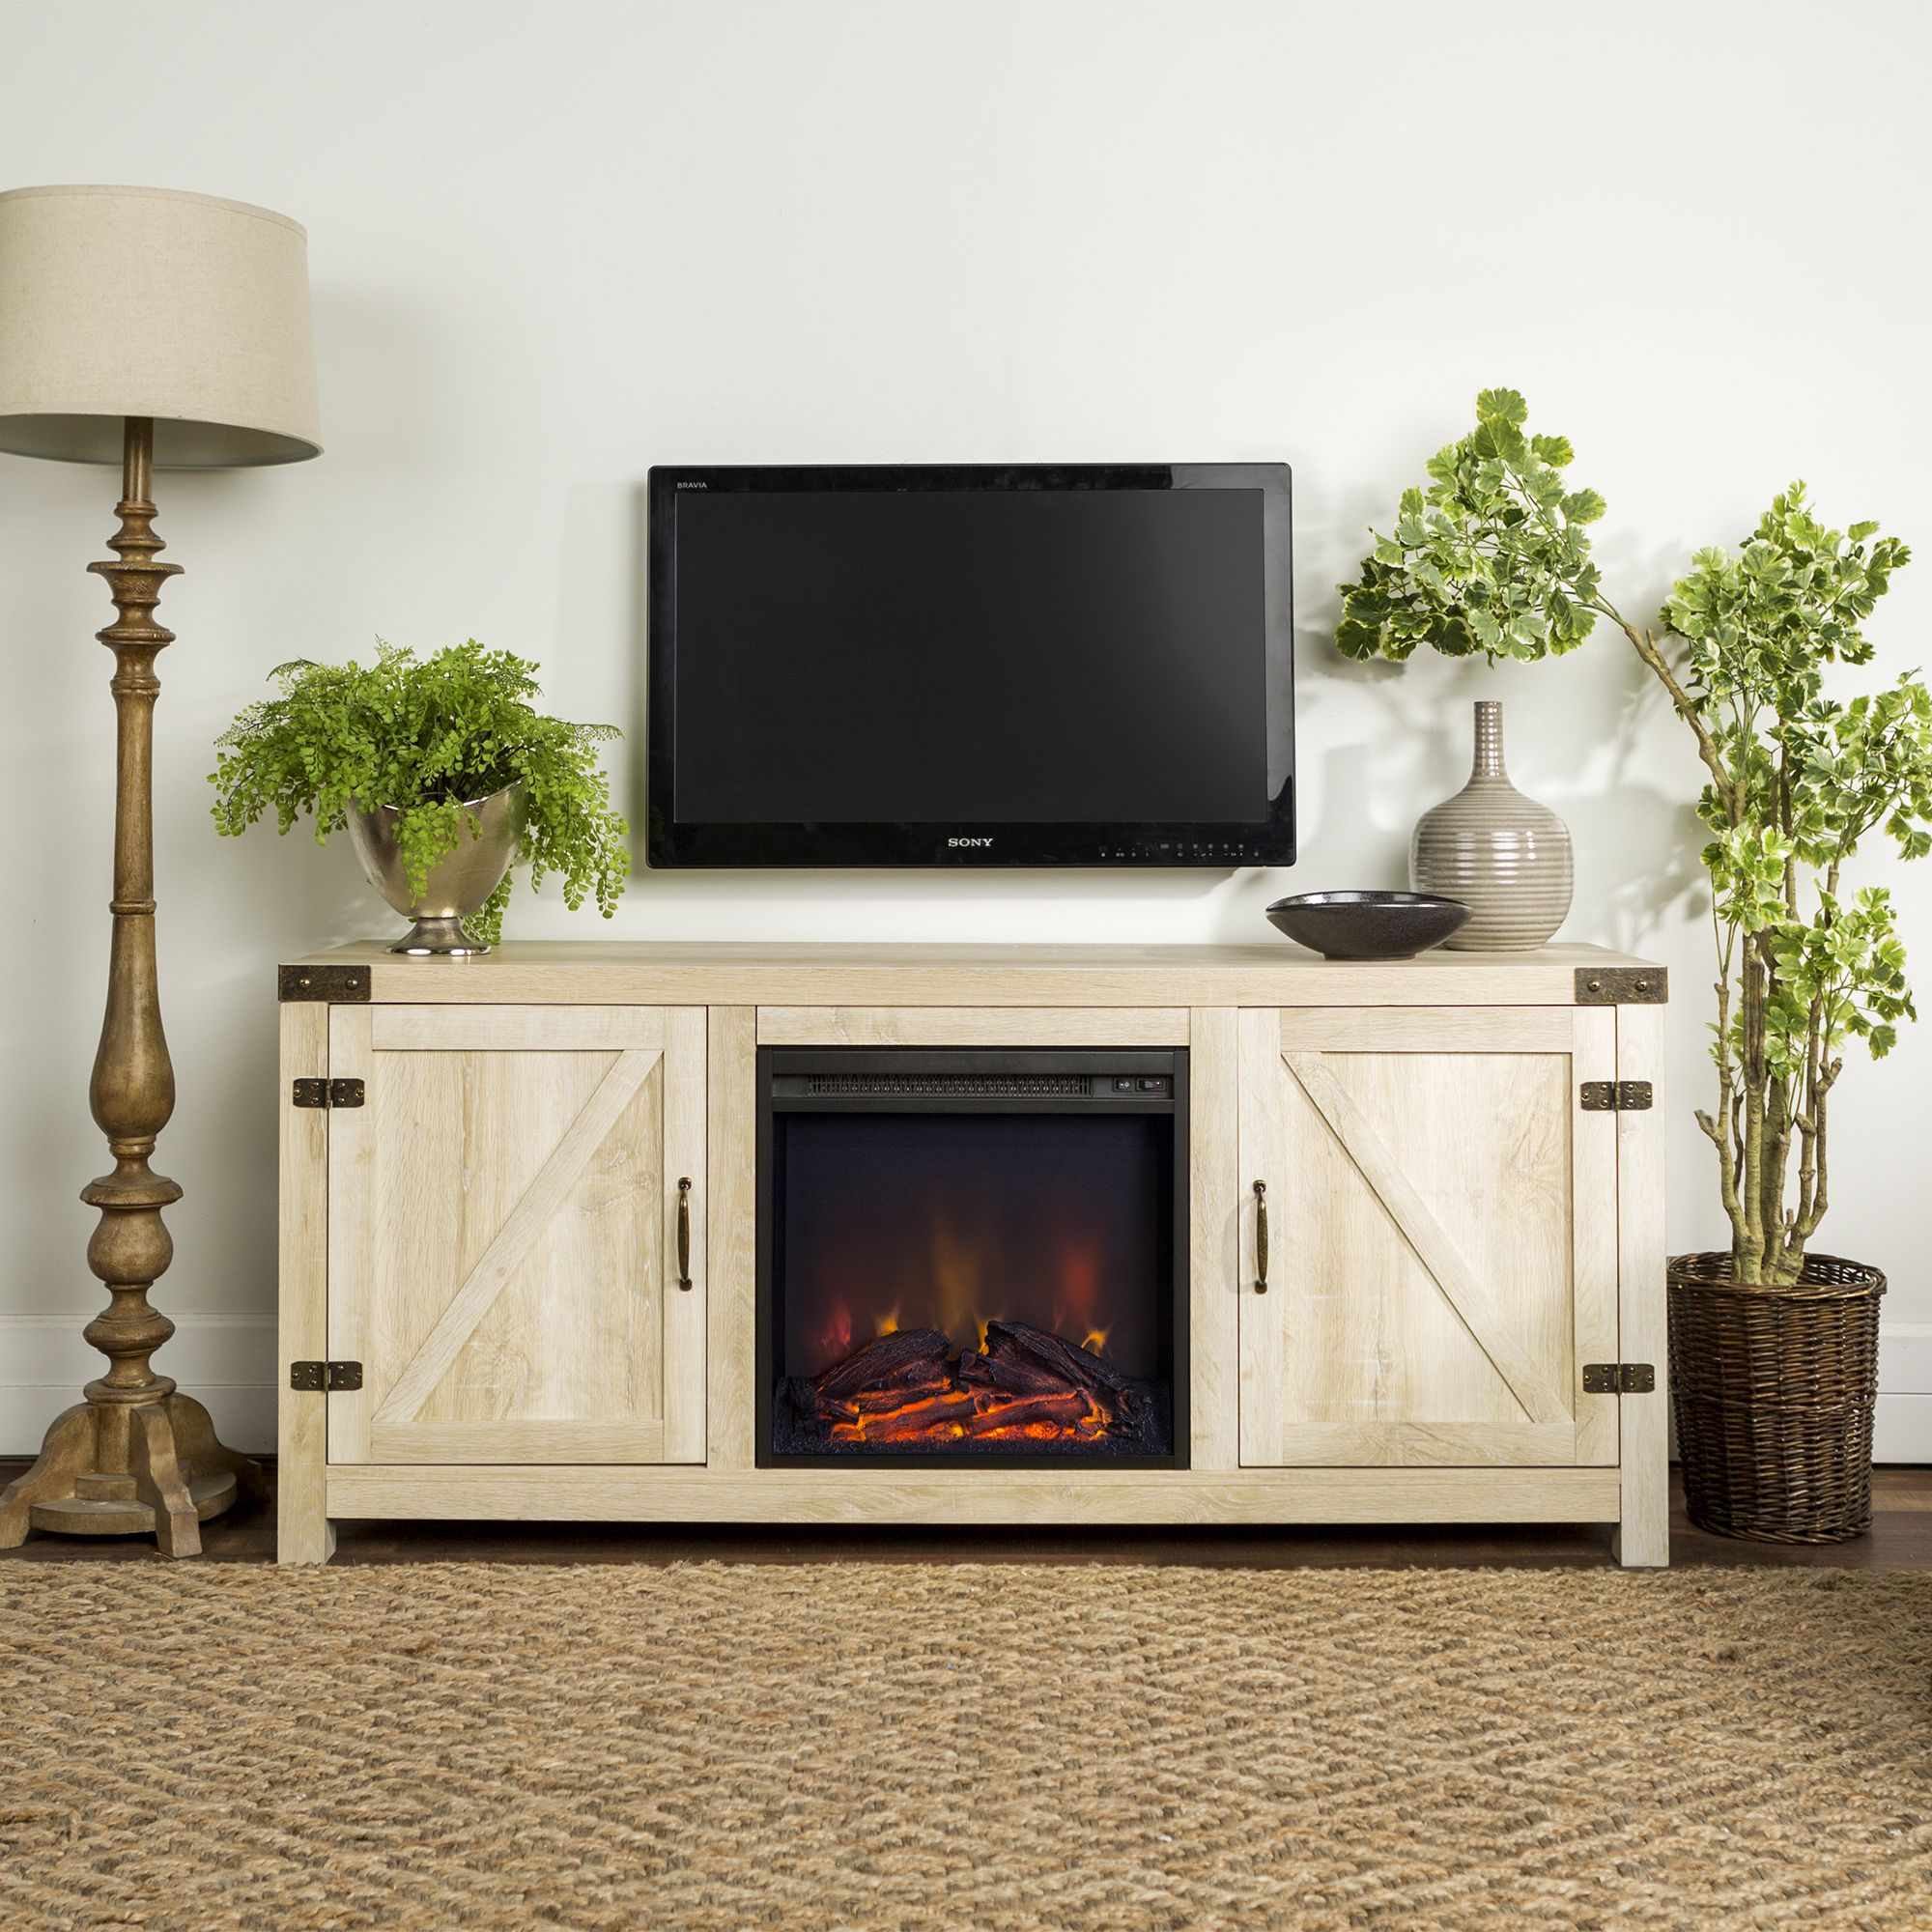 Manor Park Farmhouse Fireplace Tv Stand For Tvs Up To 65 White Oak Walmart Com In 2020 Fireplace Tv Stand Fireplace Tv Barn Door Tv Stand